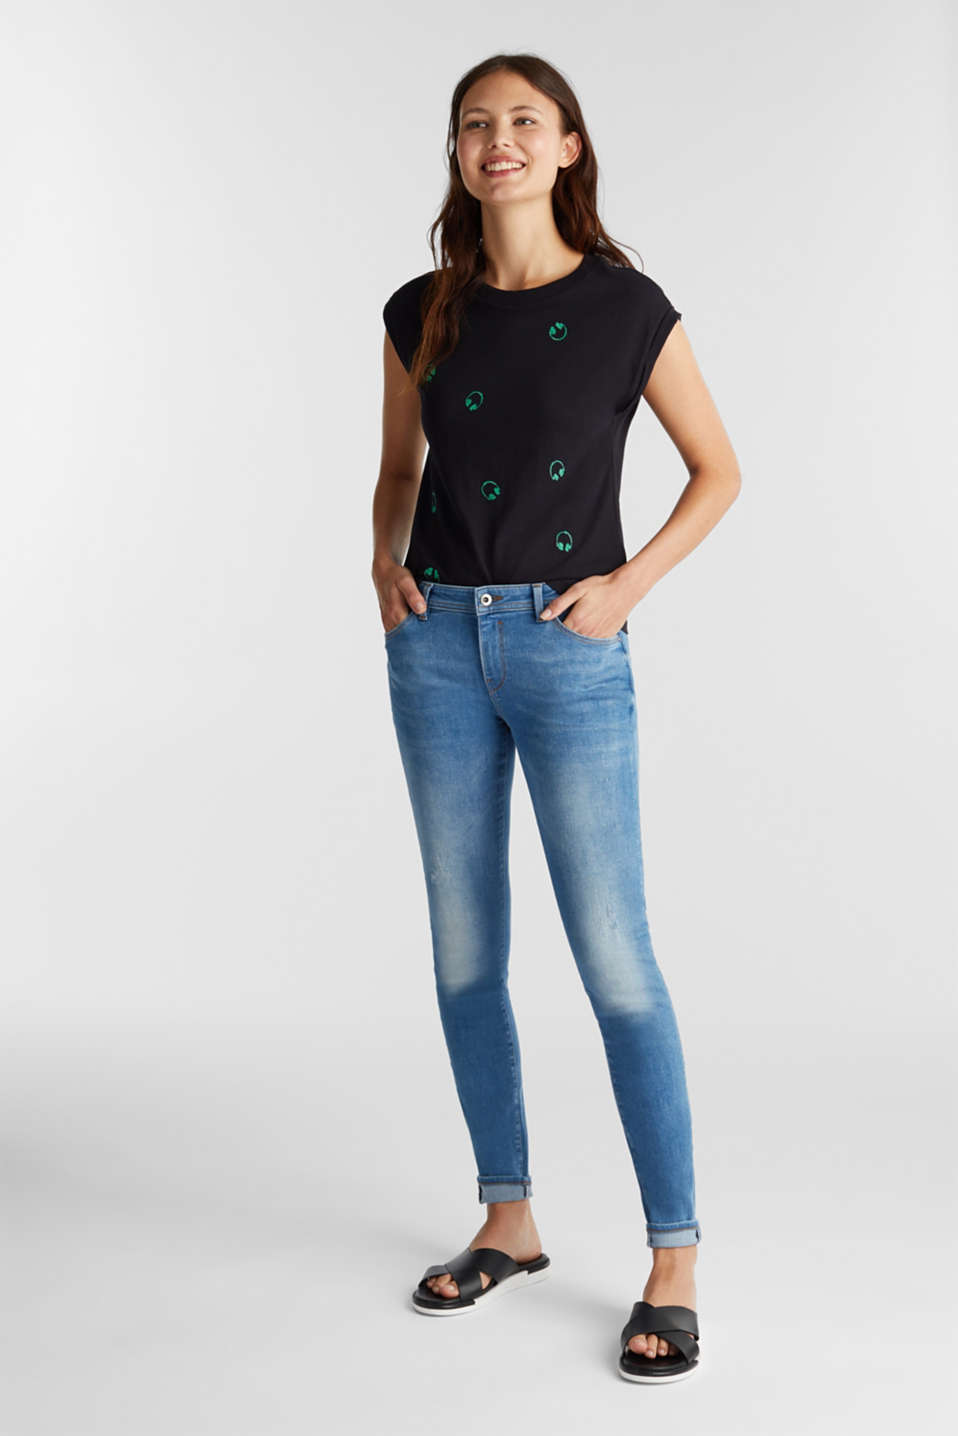 Embroidered top, organic cotton, BLACK, detail image number 1